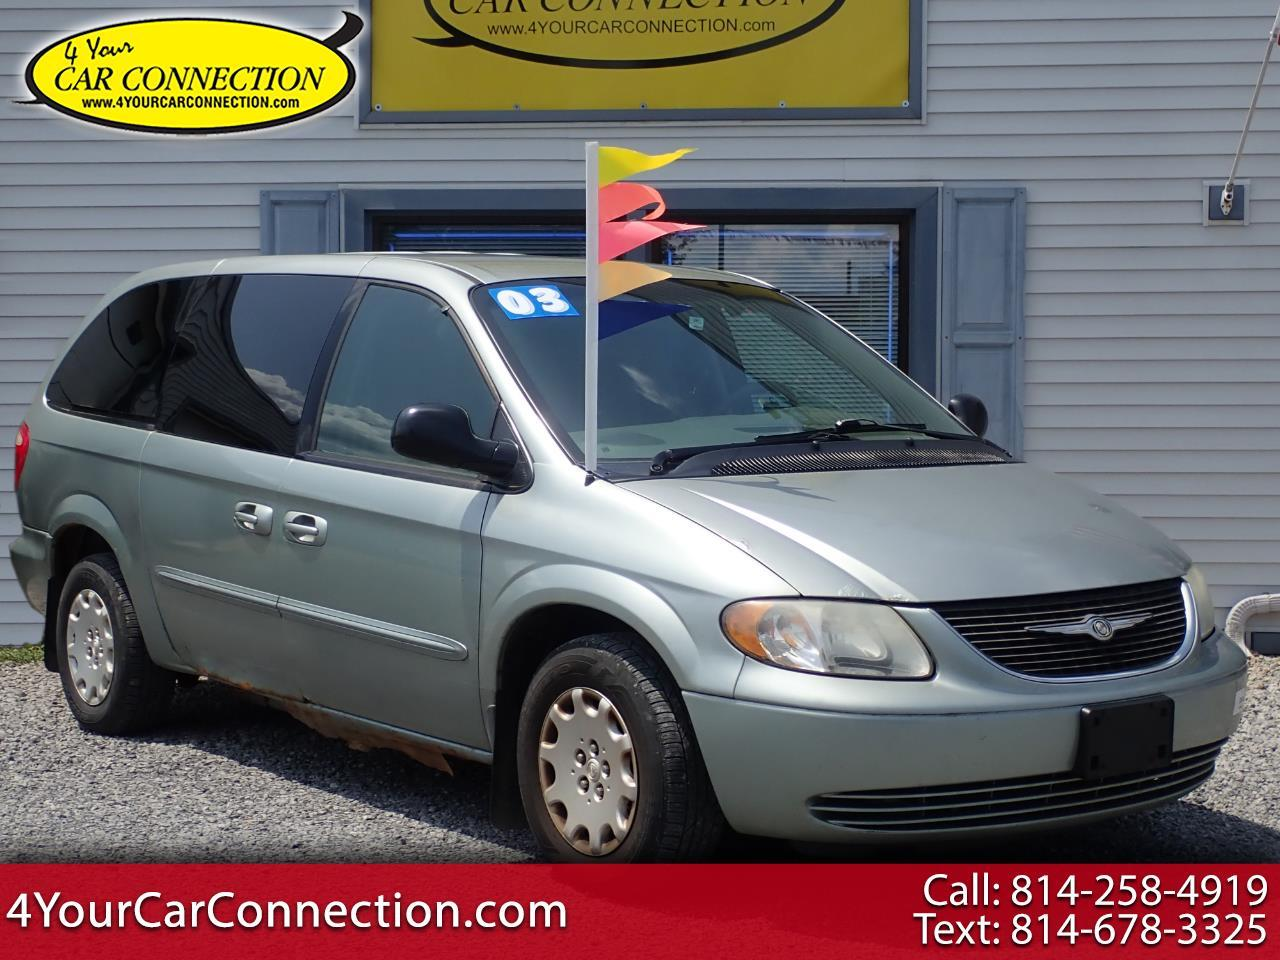 2003 Chrysler Town & Country $995